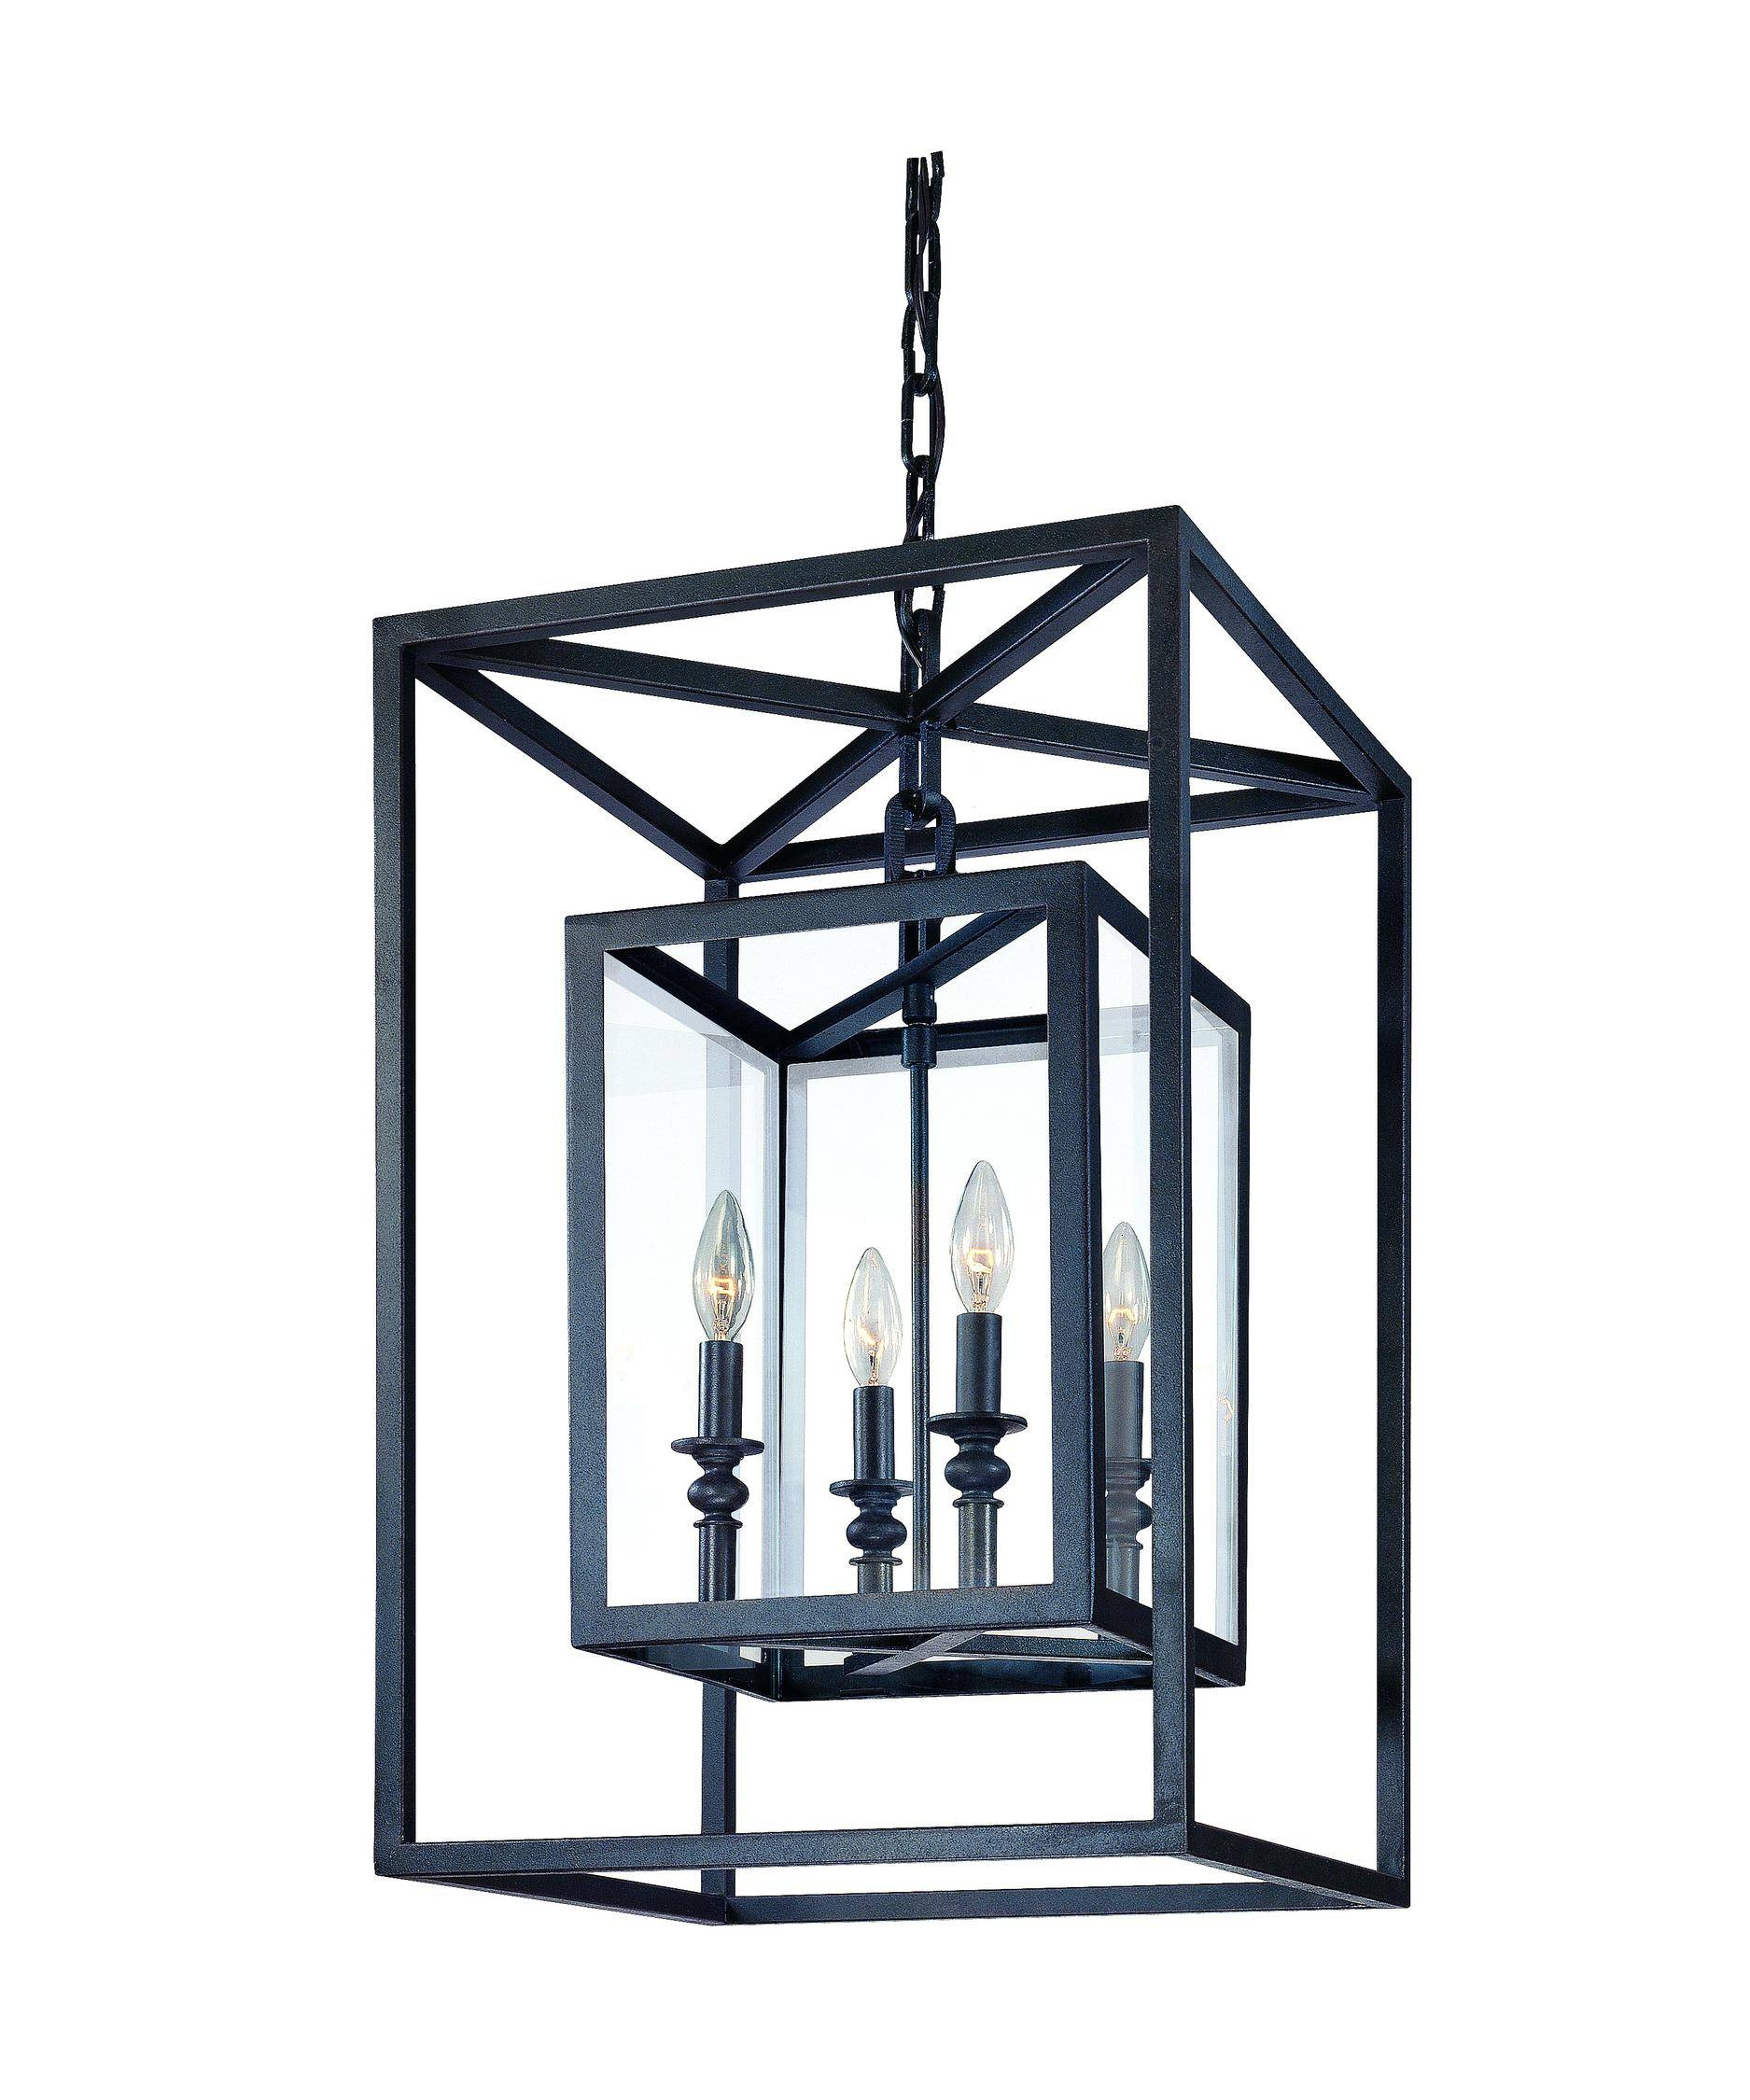 Troy Lighting F9994 Morgan 16 Inch Wide Foyer Pendant | Capitol Intended For Foyer Pendant Light Fixtures (View 9 of 15)